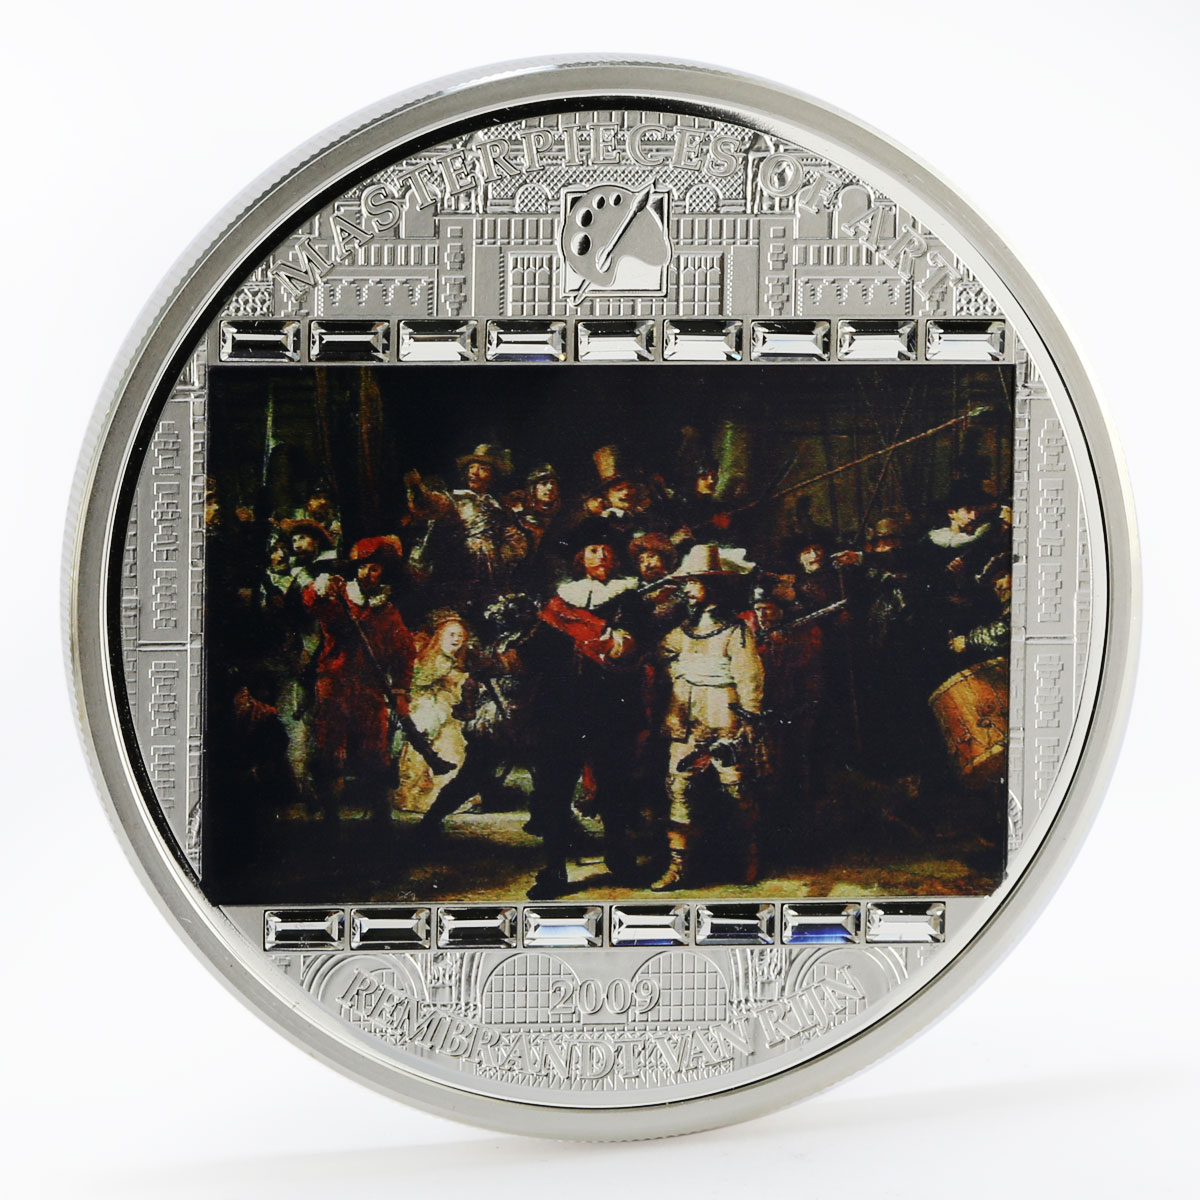 Cook Islands 20 dollars Rembrandt Art Nightwatch swarowski colored silver 2009